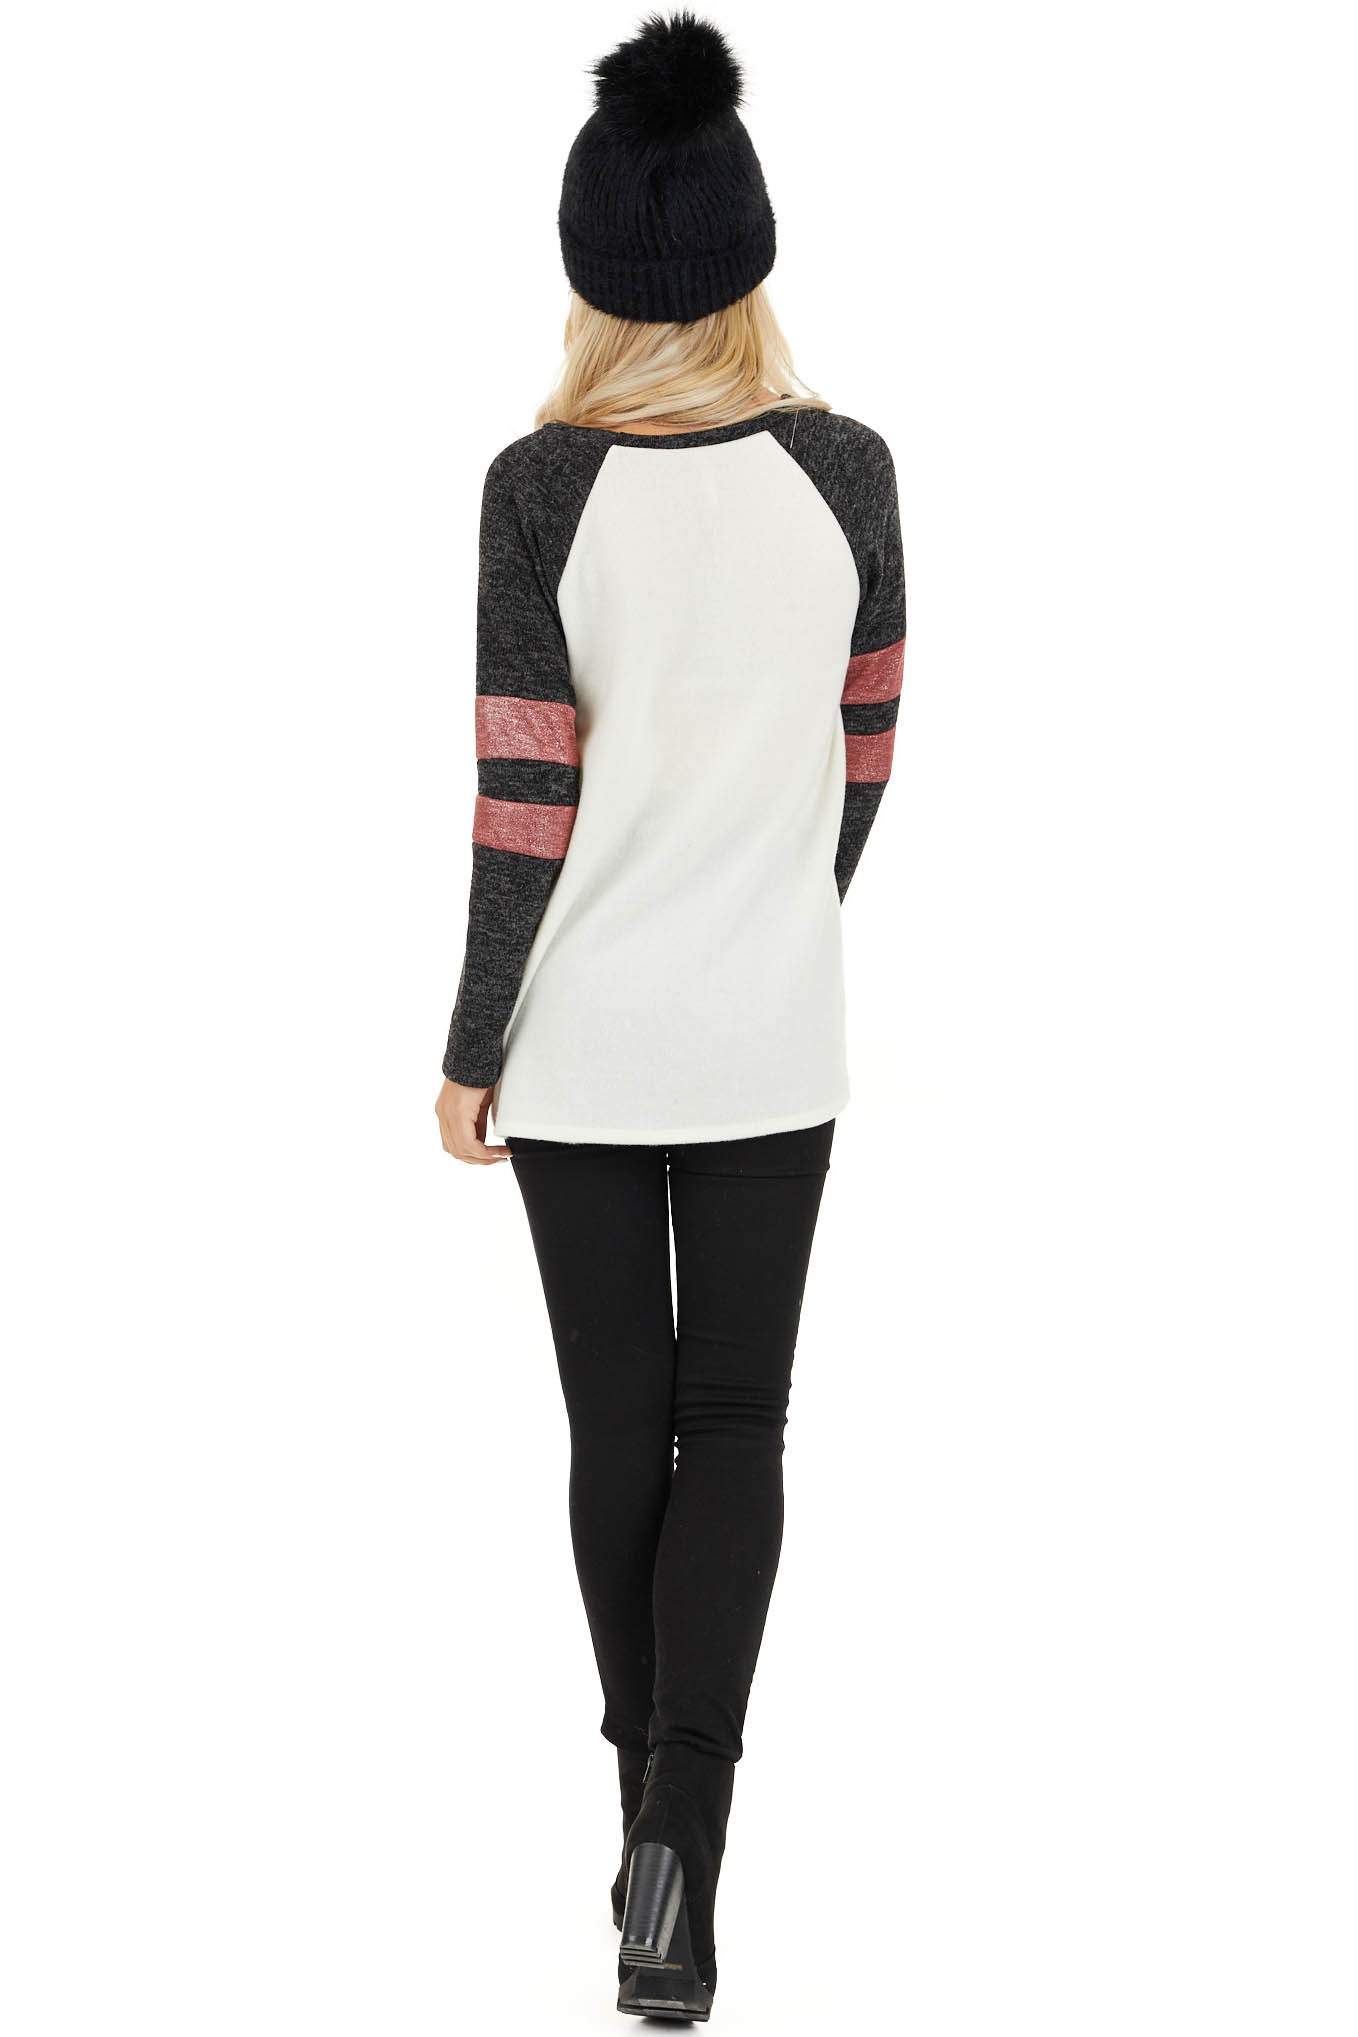 Ivory and Charcoal Long Sleeve Top with Sleeve Stripe Detail back full body